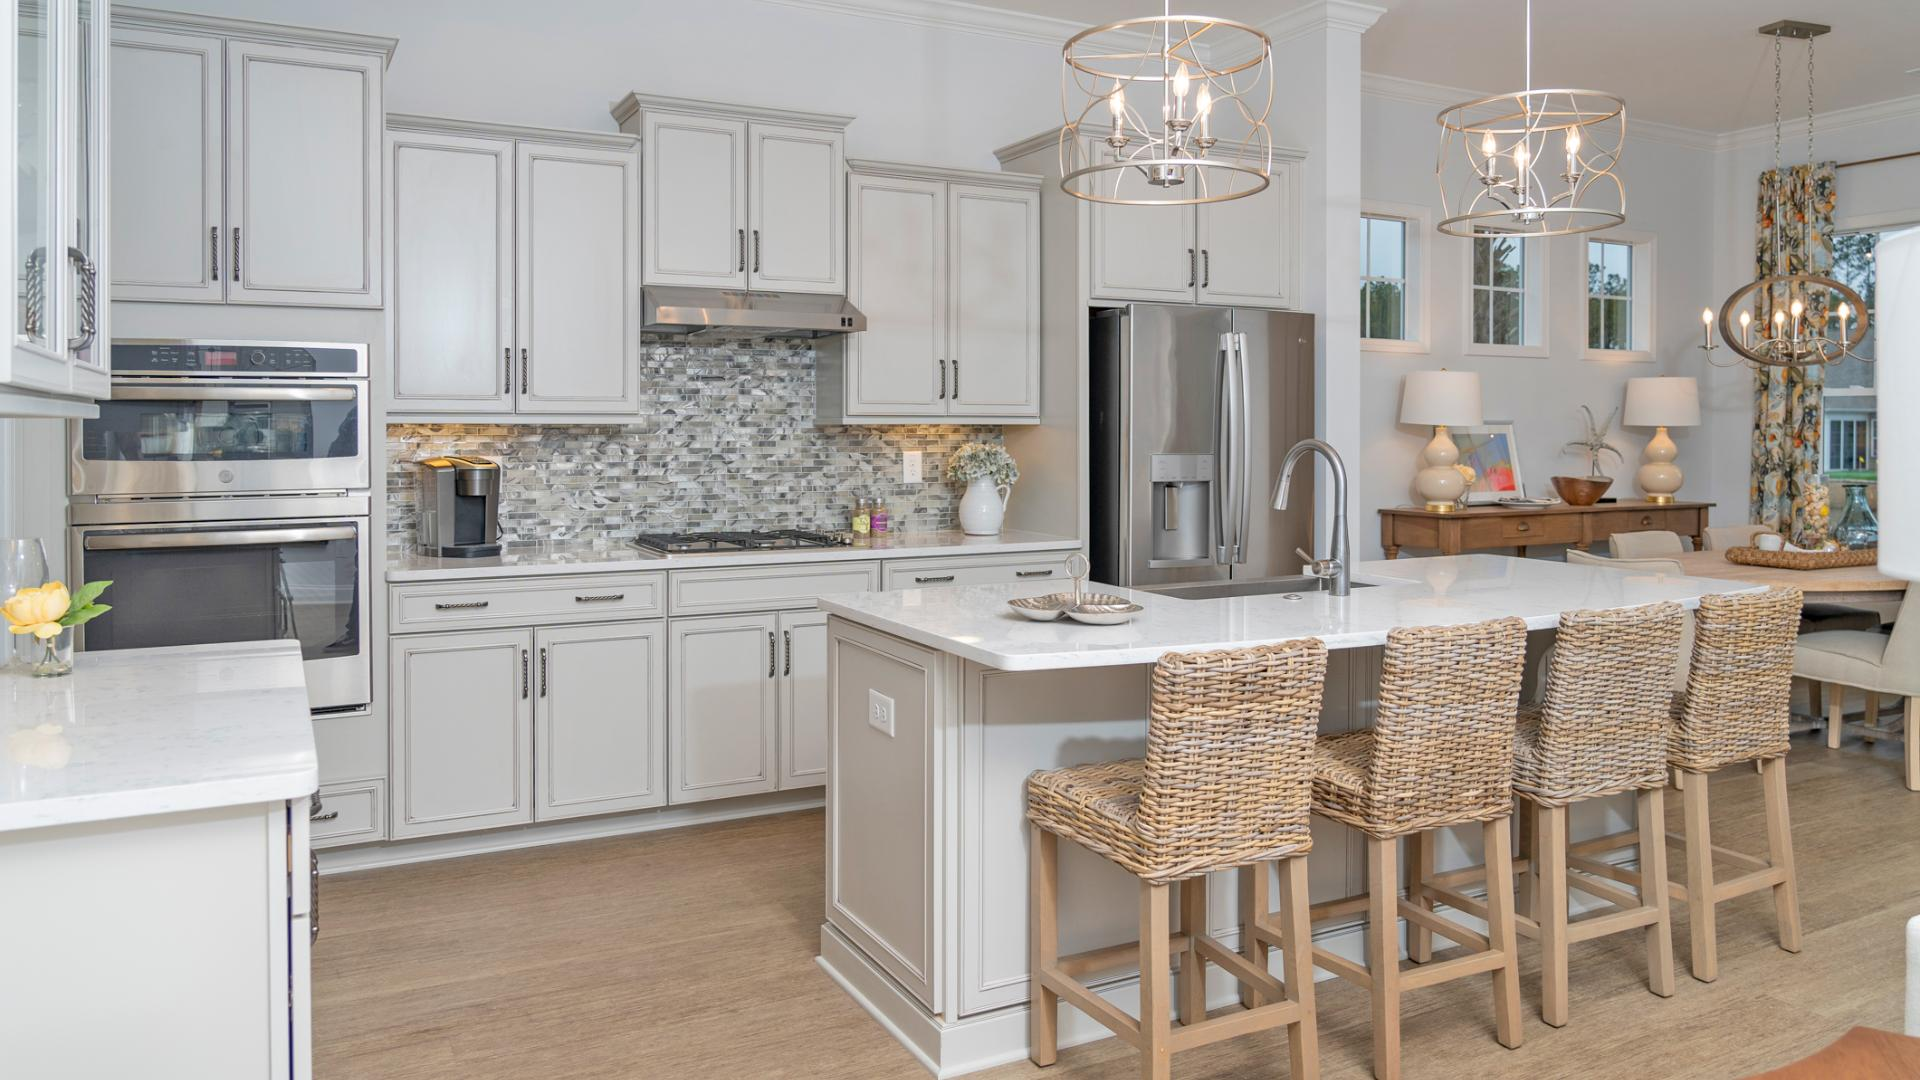 Well-equipped kitchens with ample countertop and cabinet space